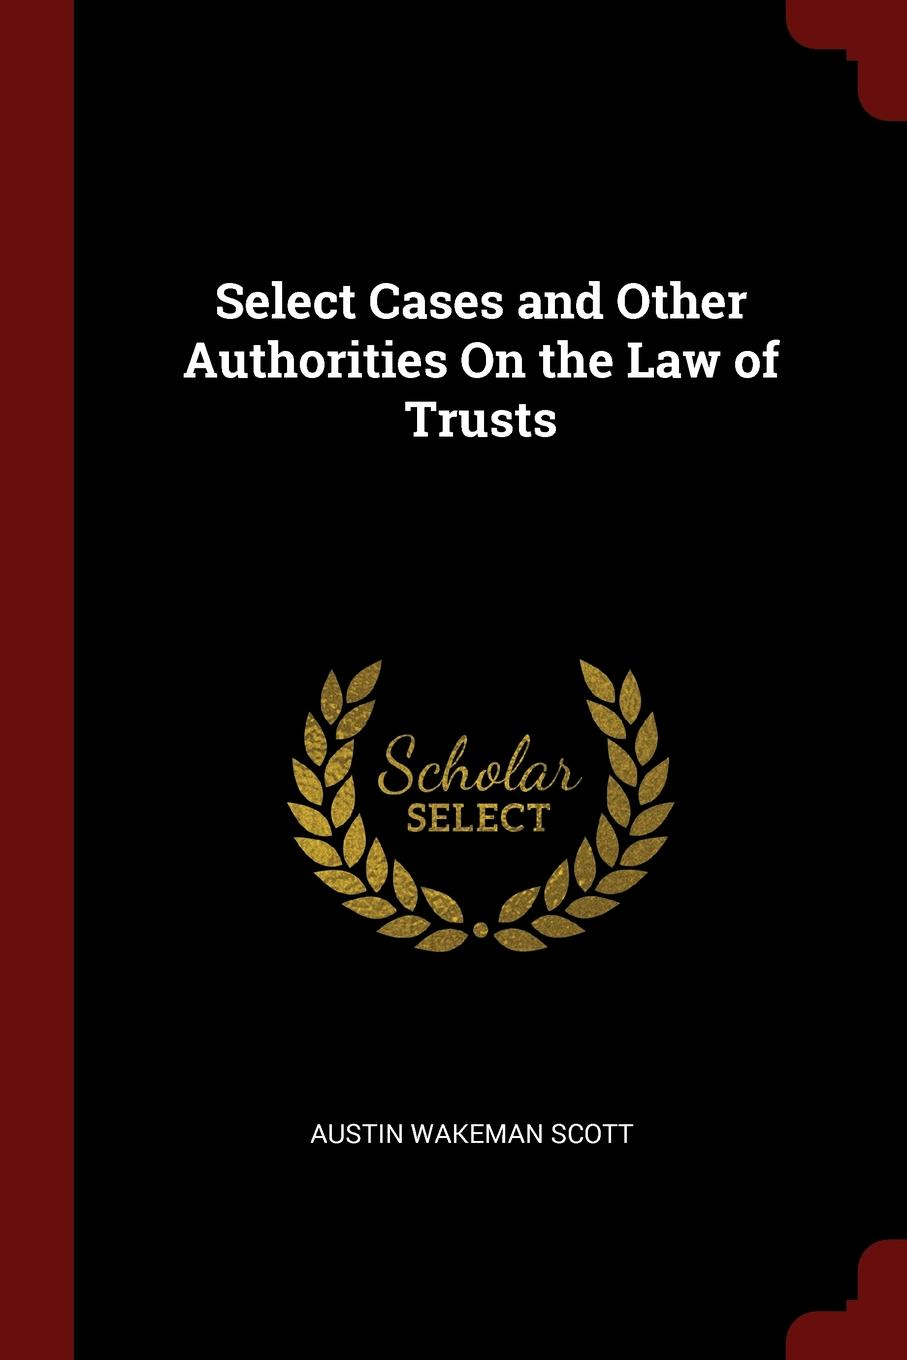 Austin Wakeman Scott Select Cases and Other Authorities On the Law of Trusts